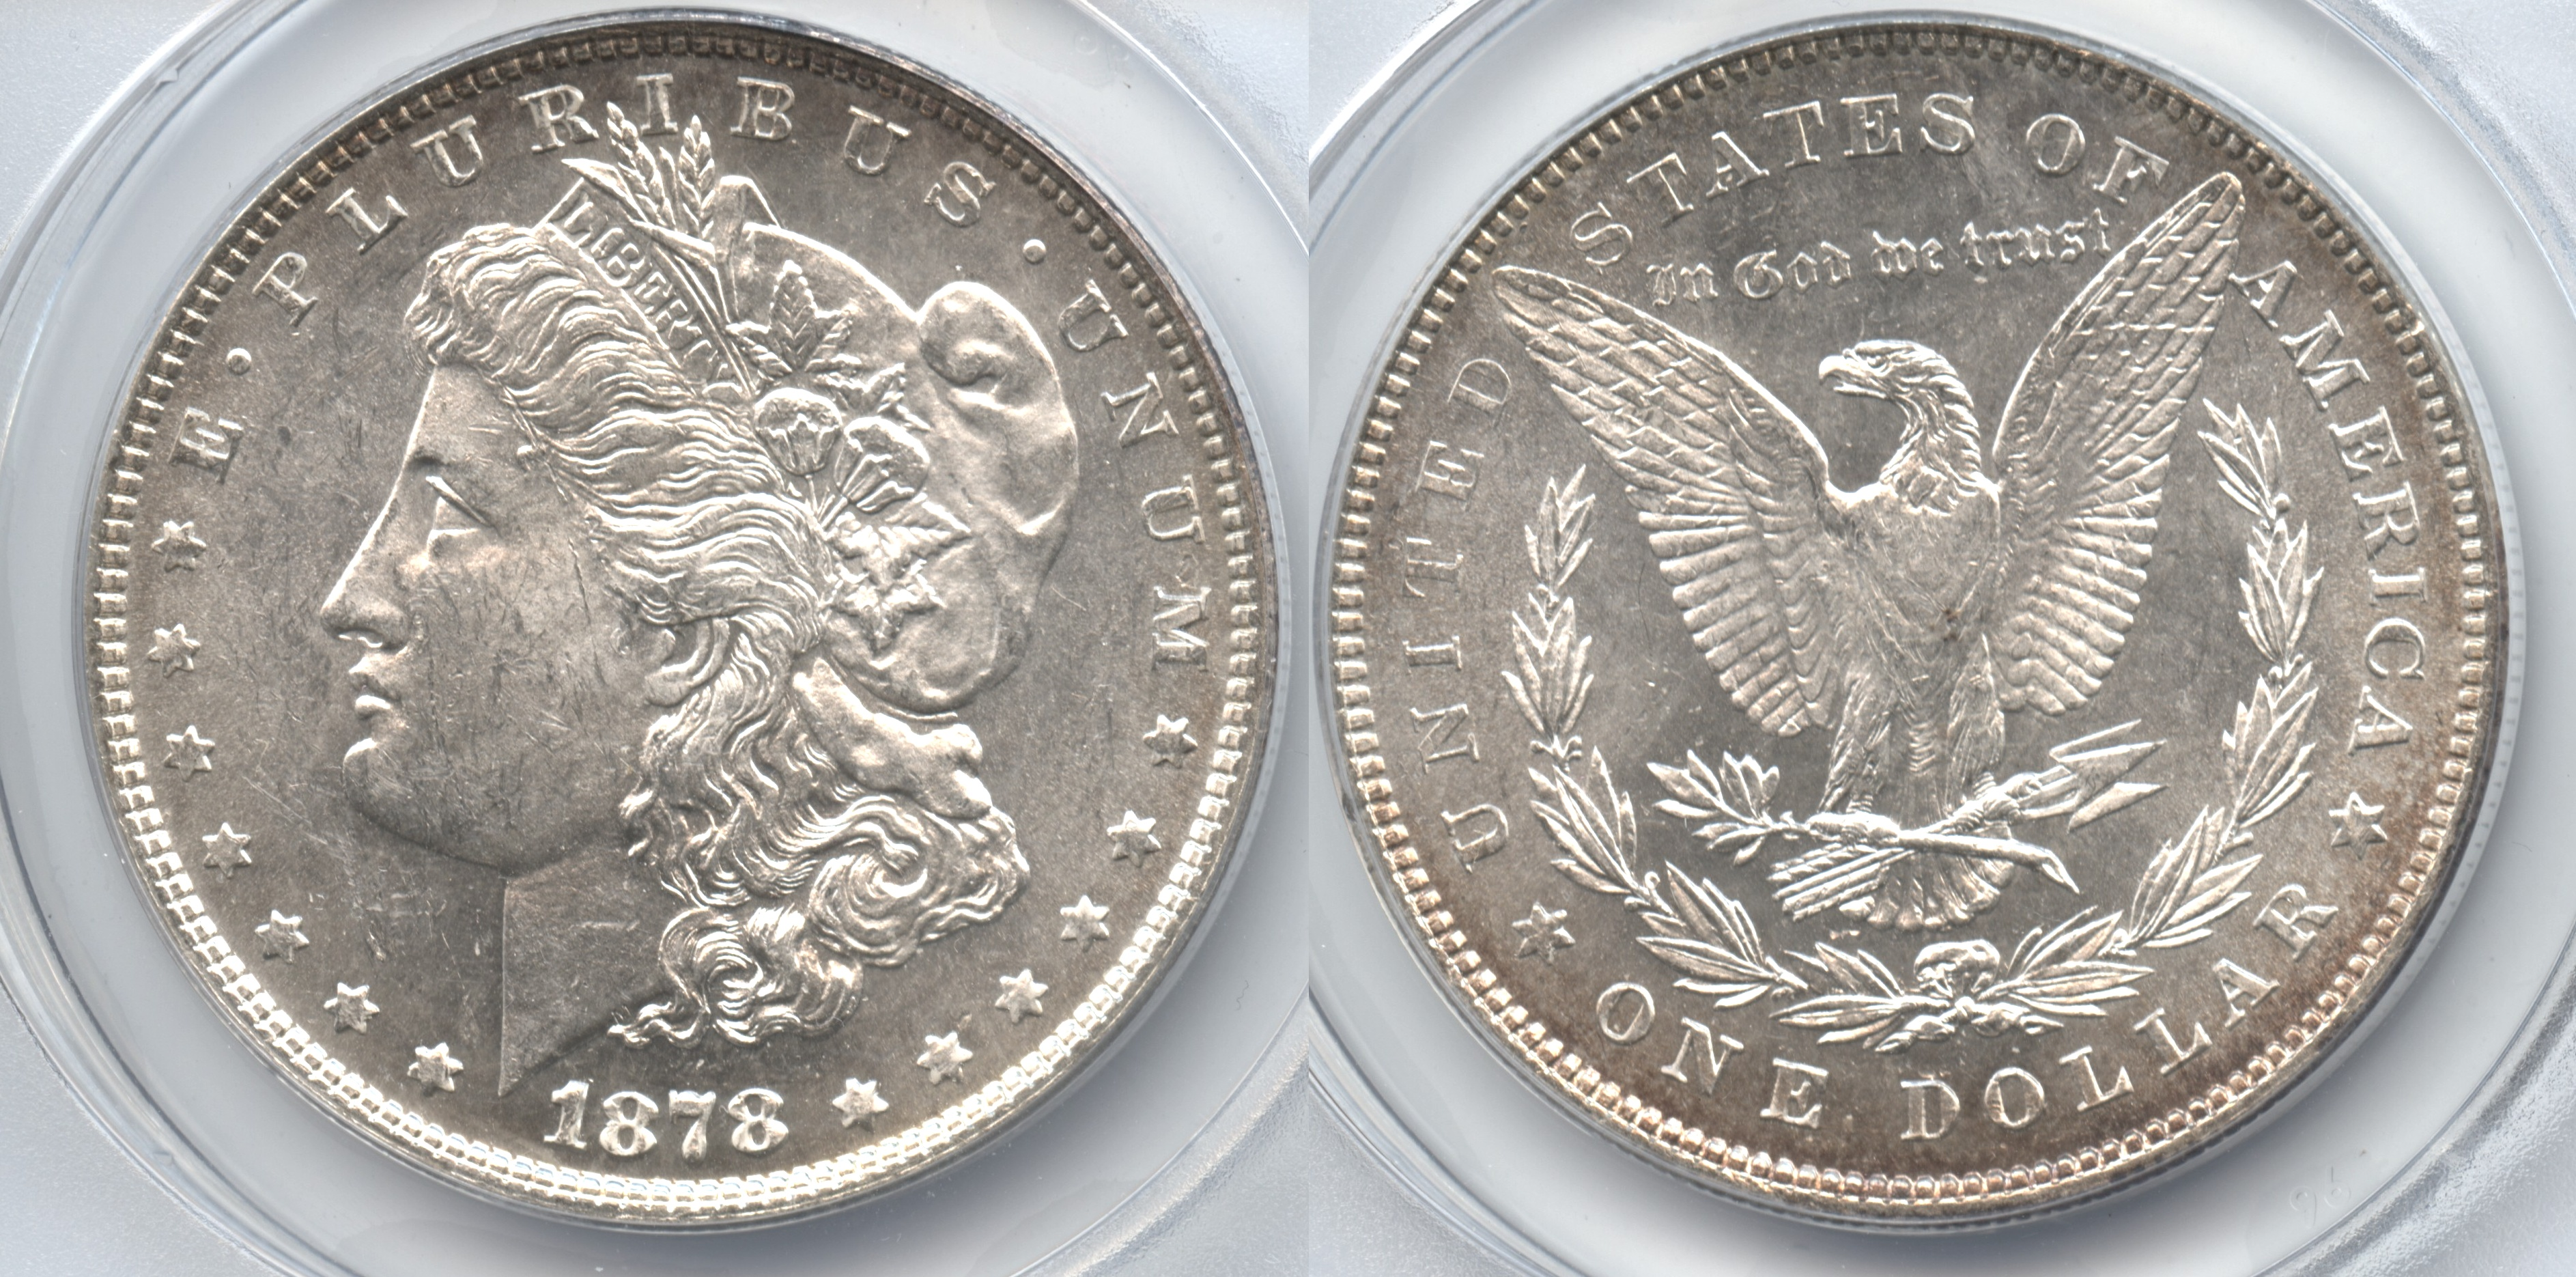 1878 7 Over 8 Tailfeathers Morgan Silver Dollar ANACS MS-62